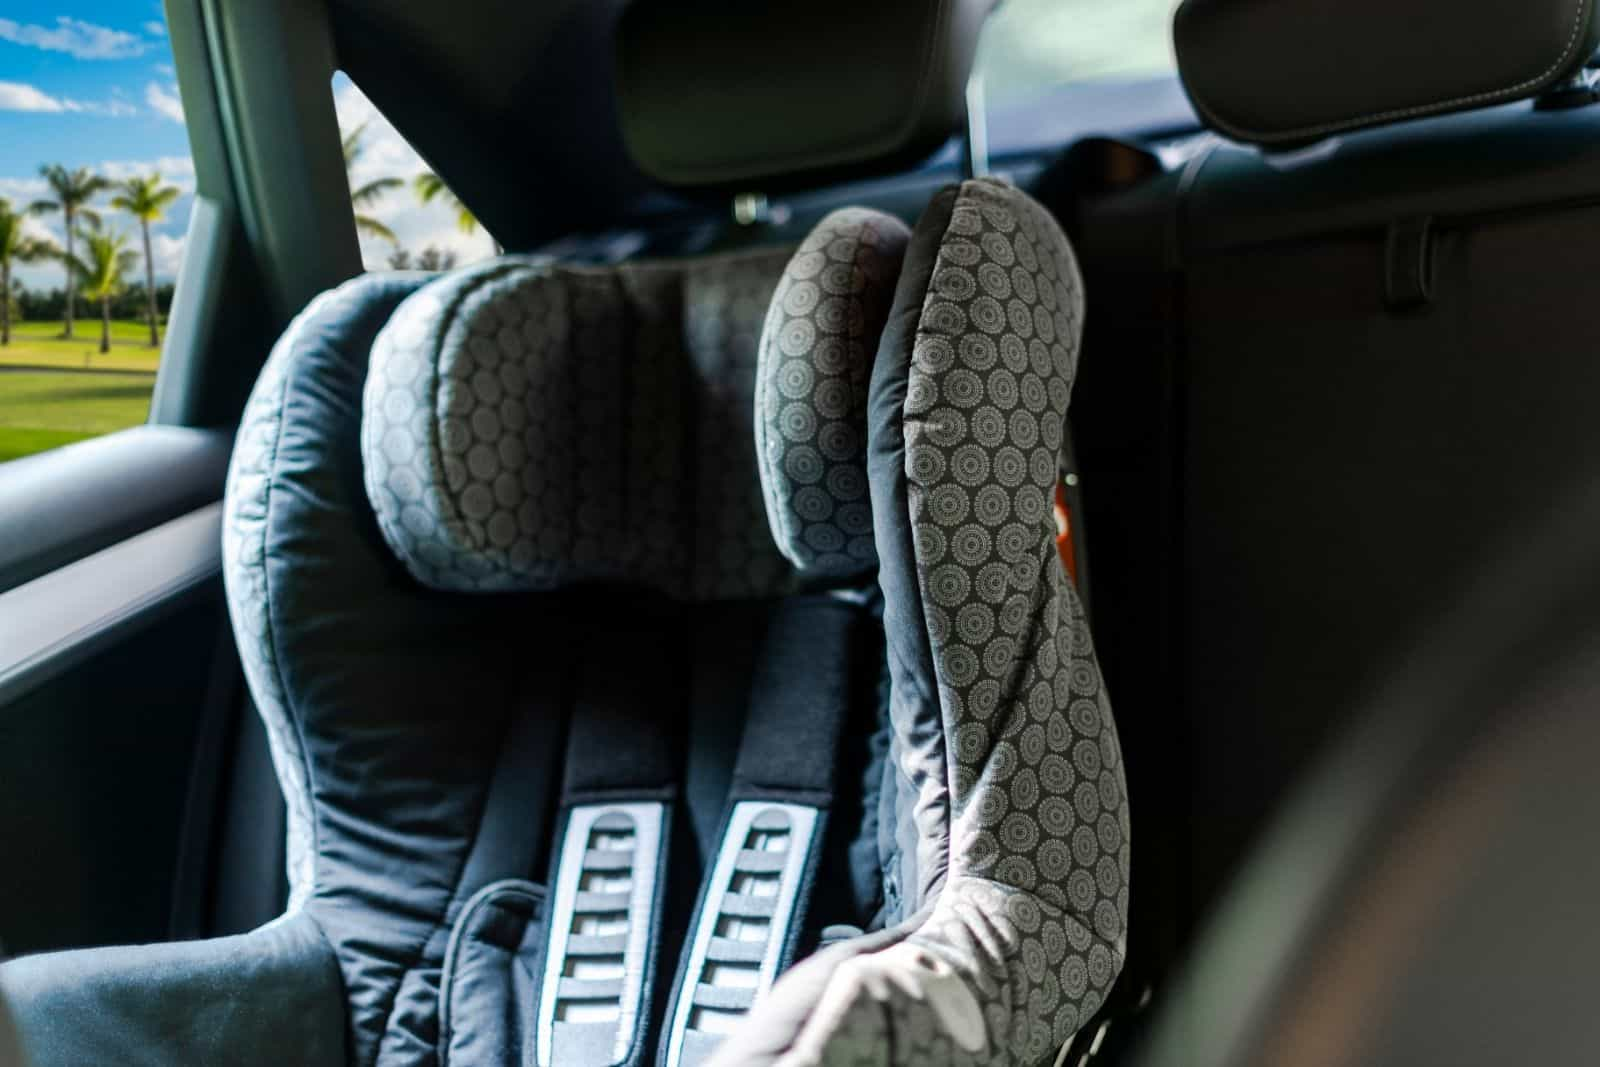 Travel with car seat is must when an infant is on board